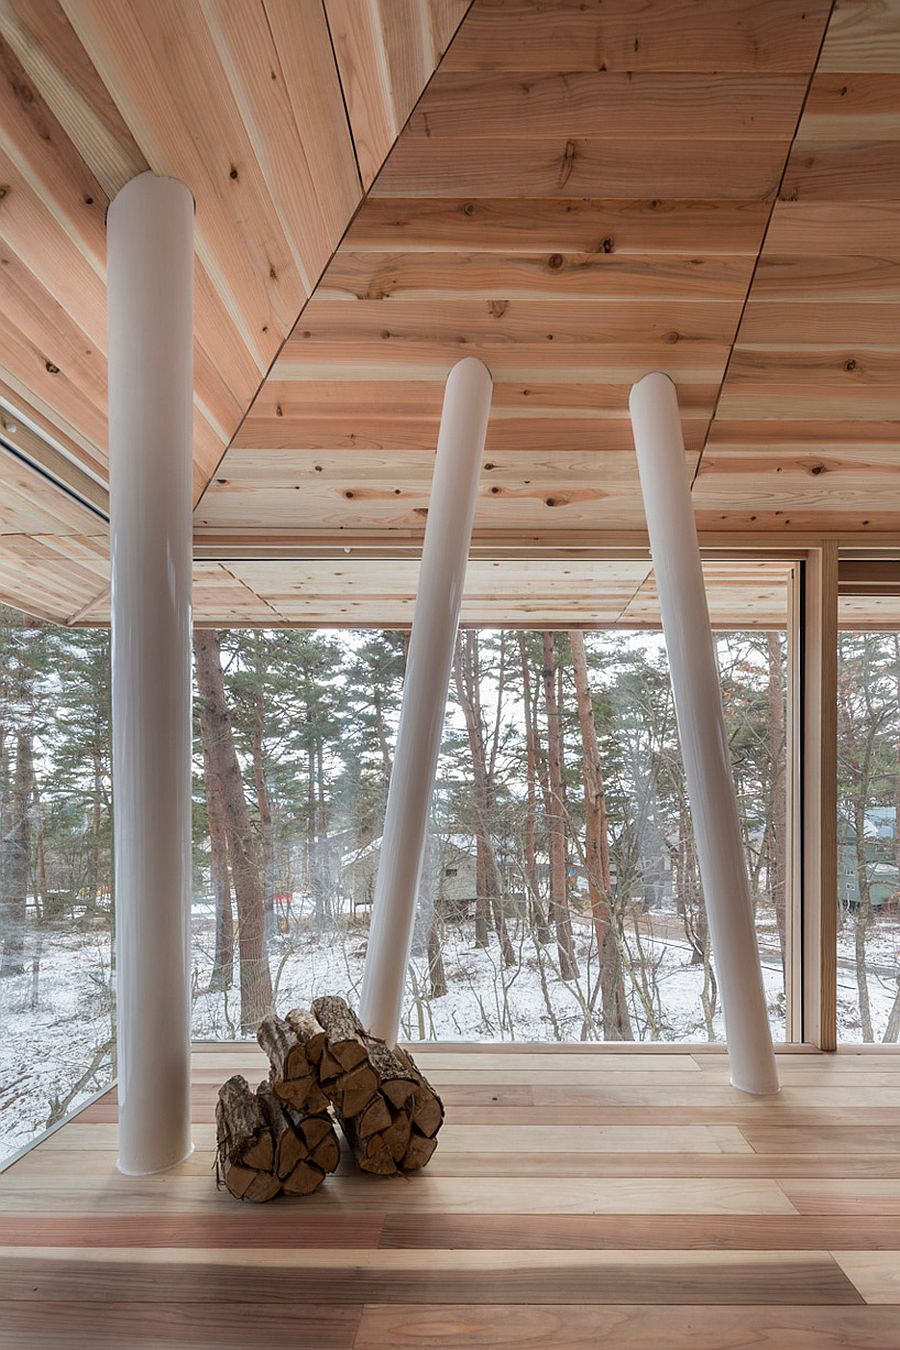 Supporting beams inside the One Year House draw inspiration from the trees outside